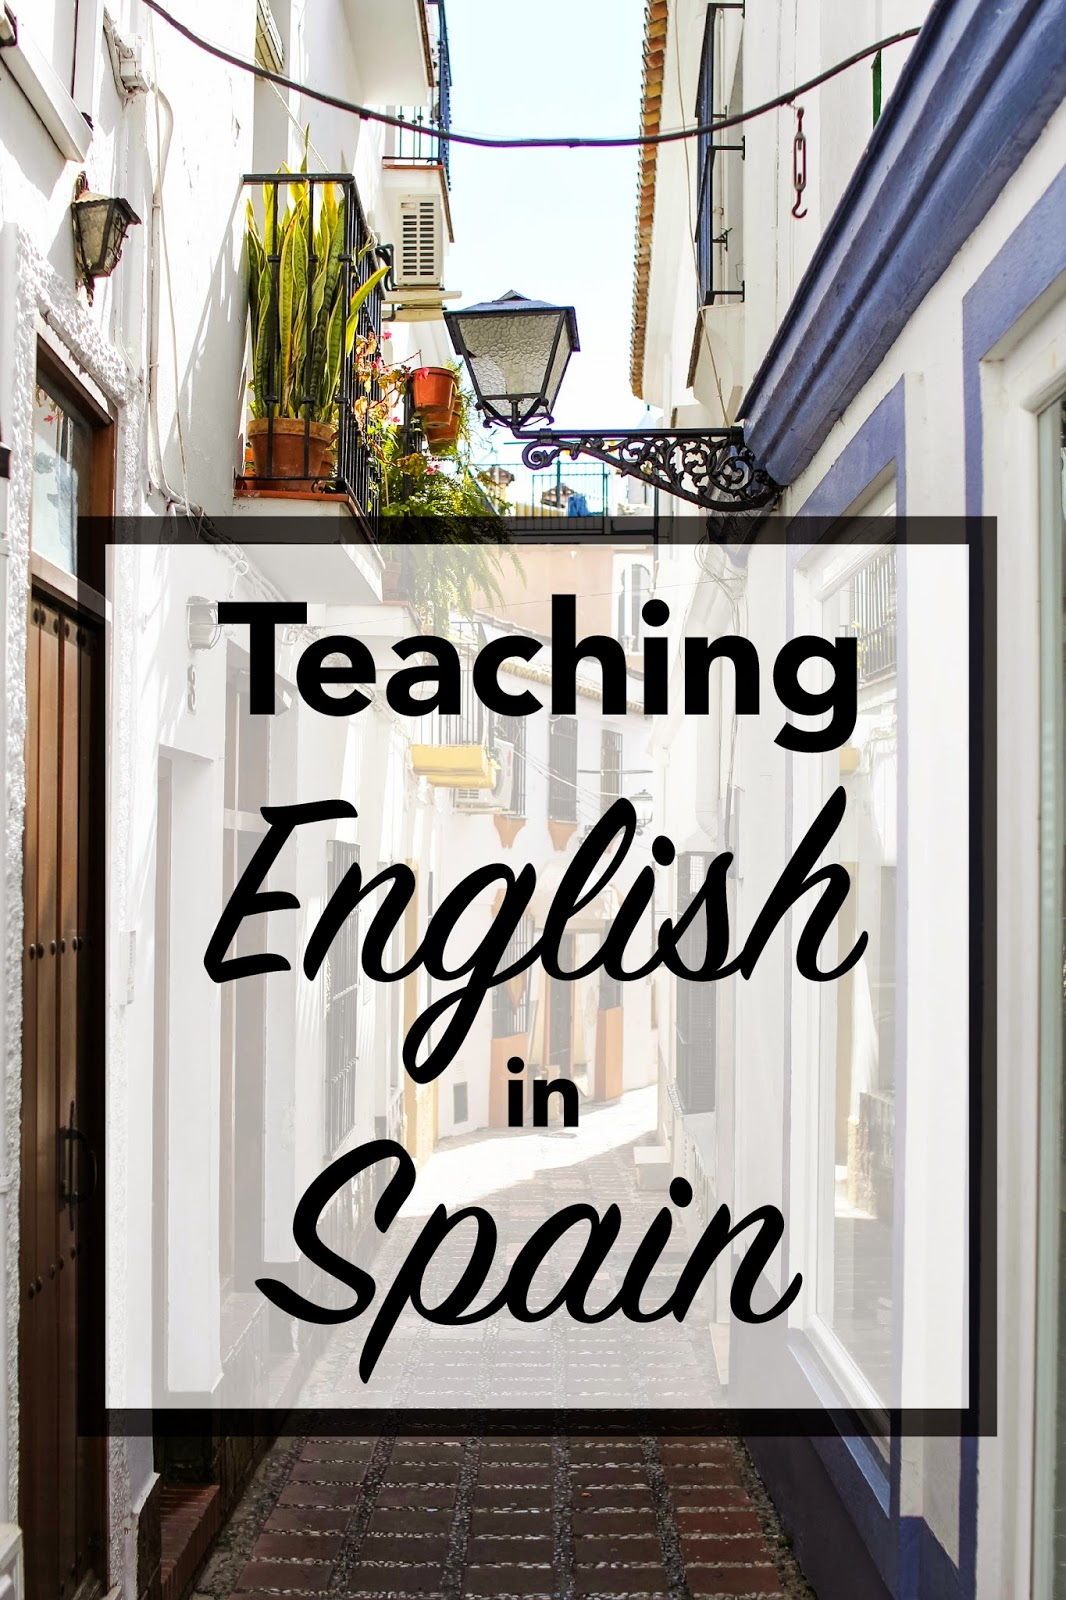 How to teach English in Spain, and what to do once you arrive | adelanteblog.com